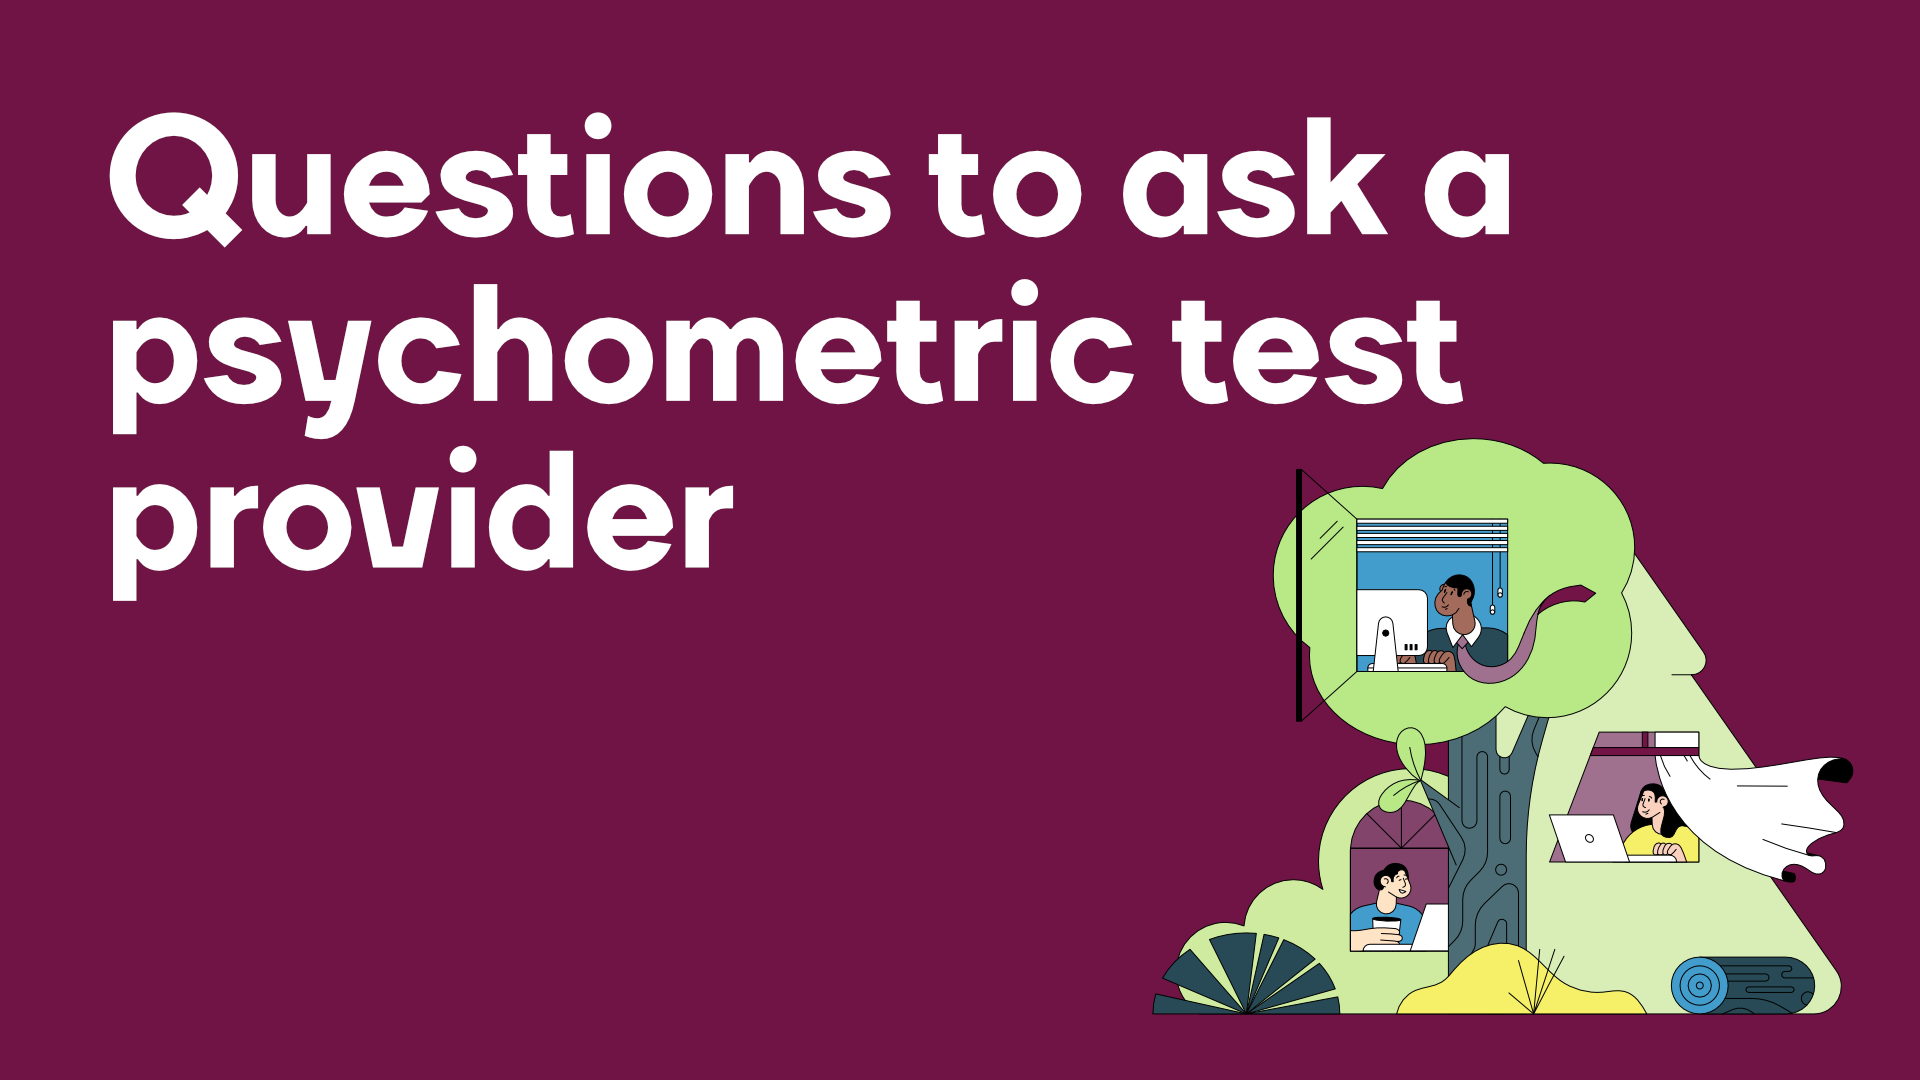 Questions to ask a psychometric test provider